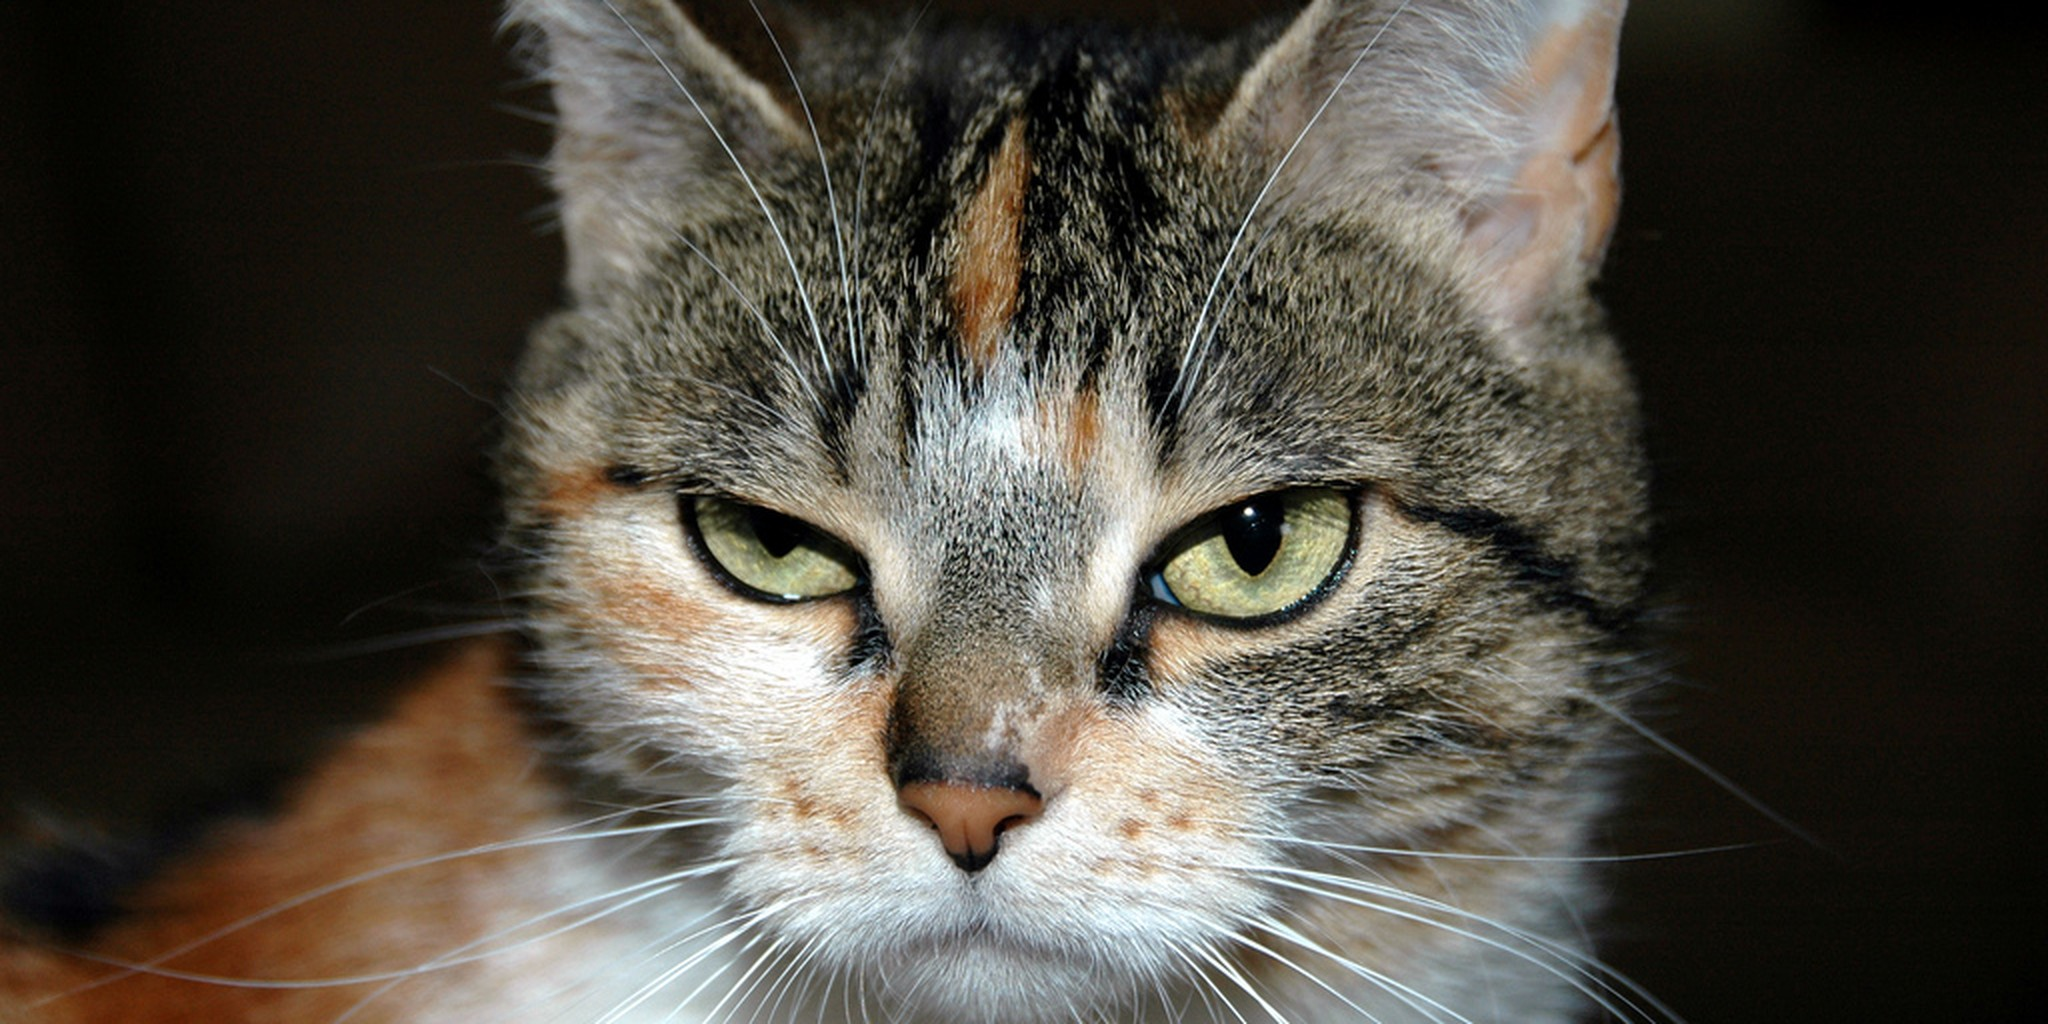 Man calls 911 when his angry cat won't let him into his house | The ...